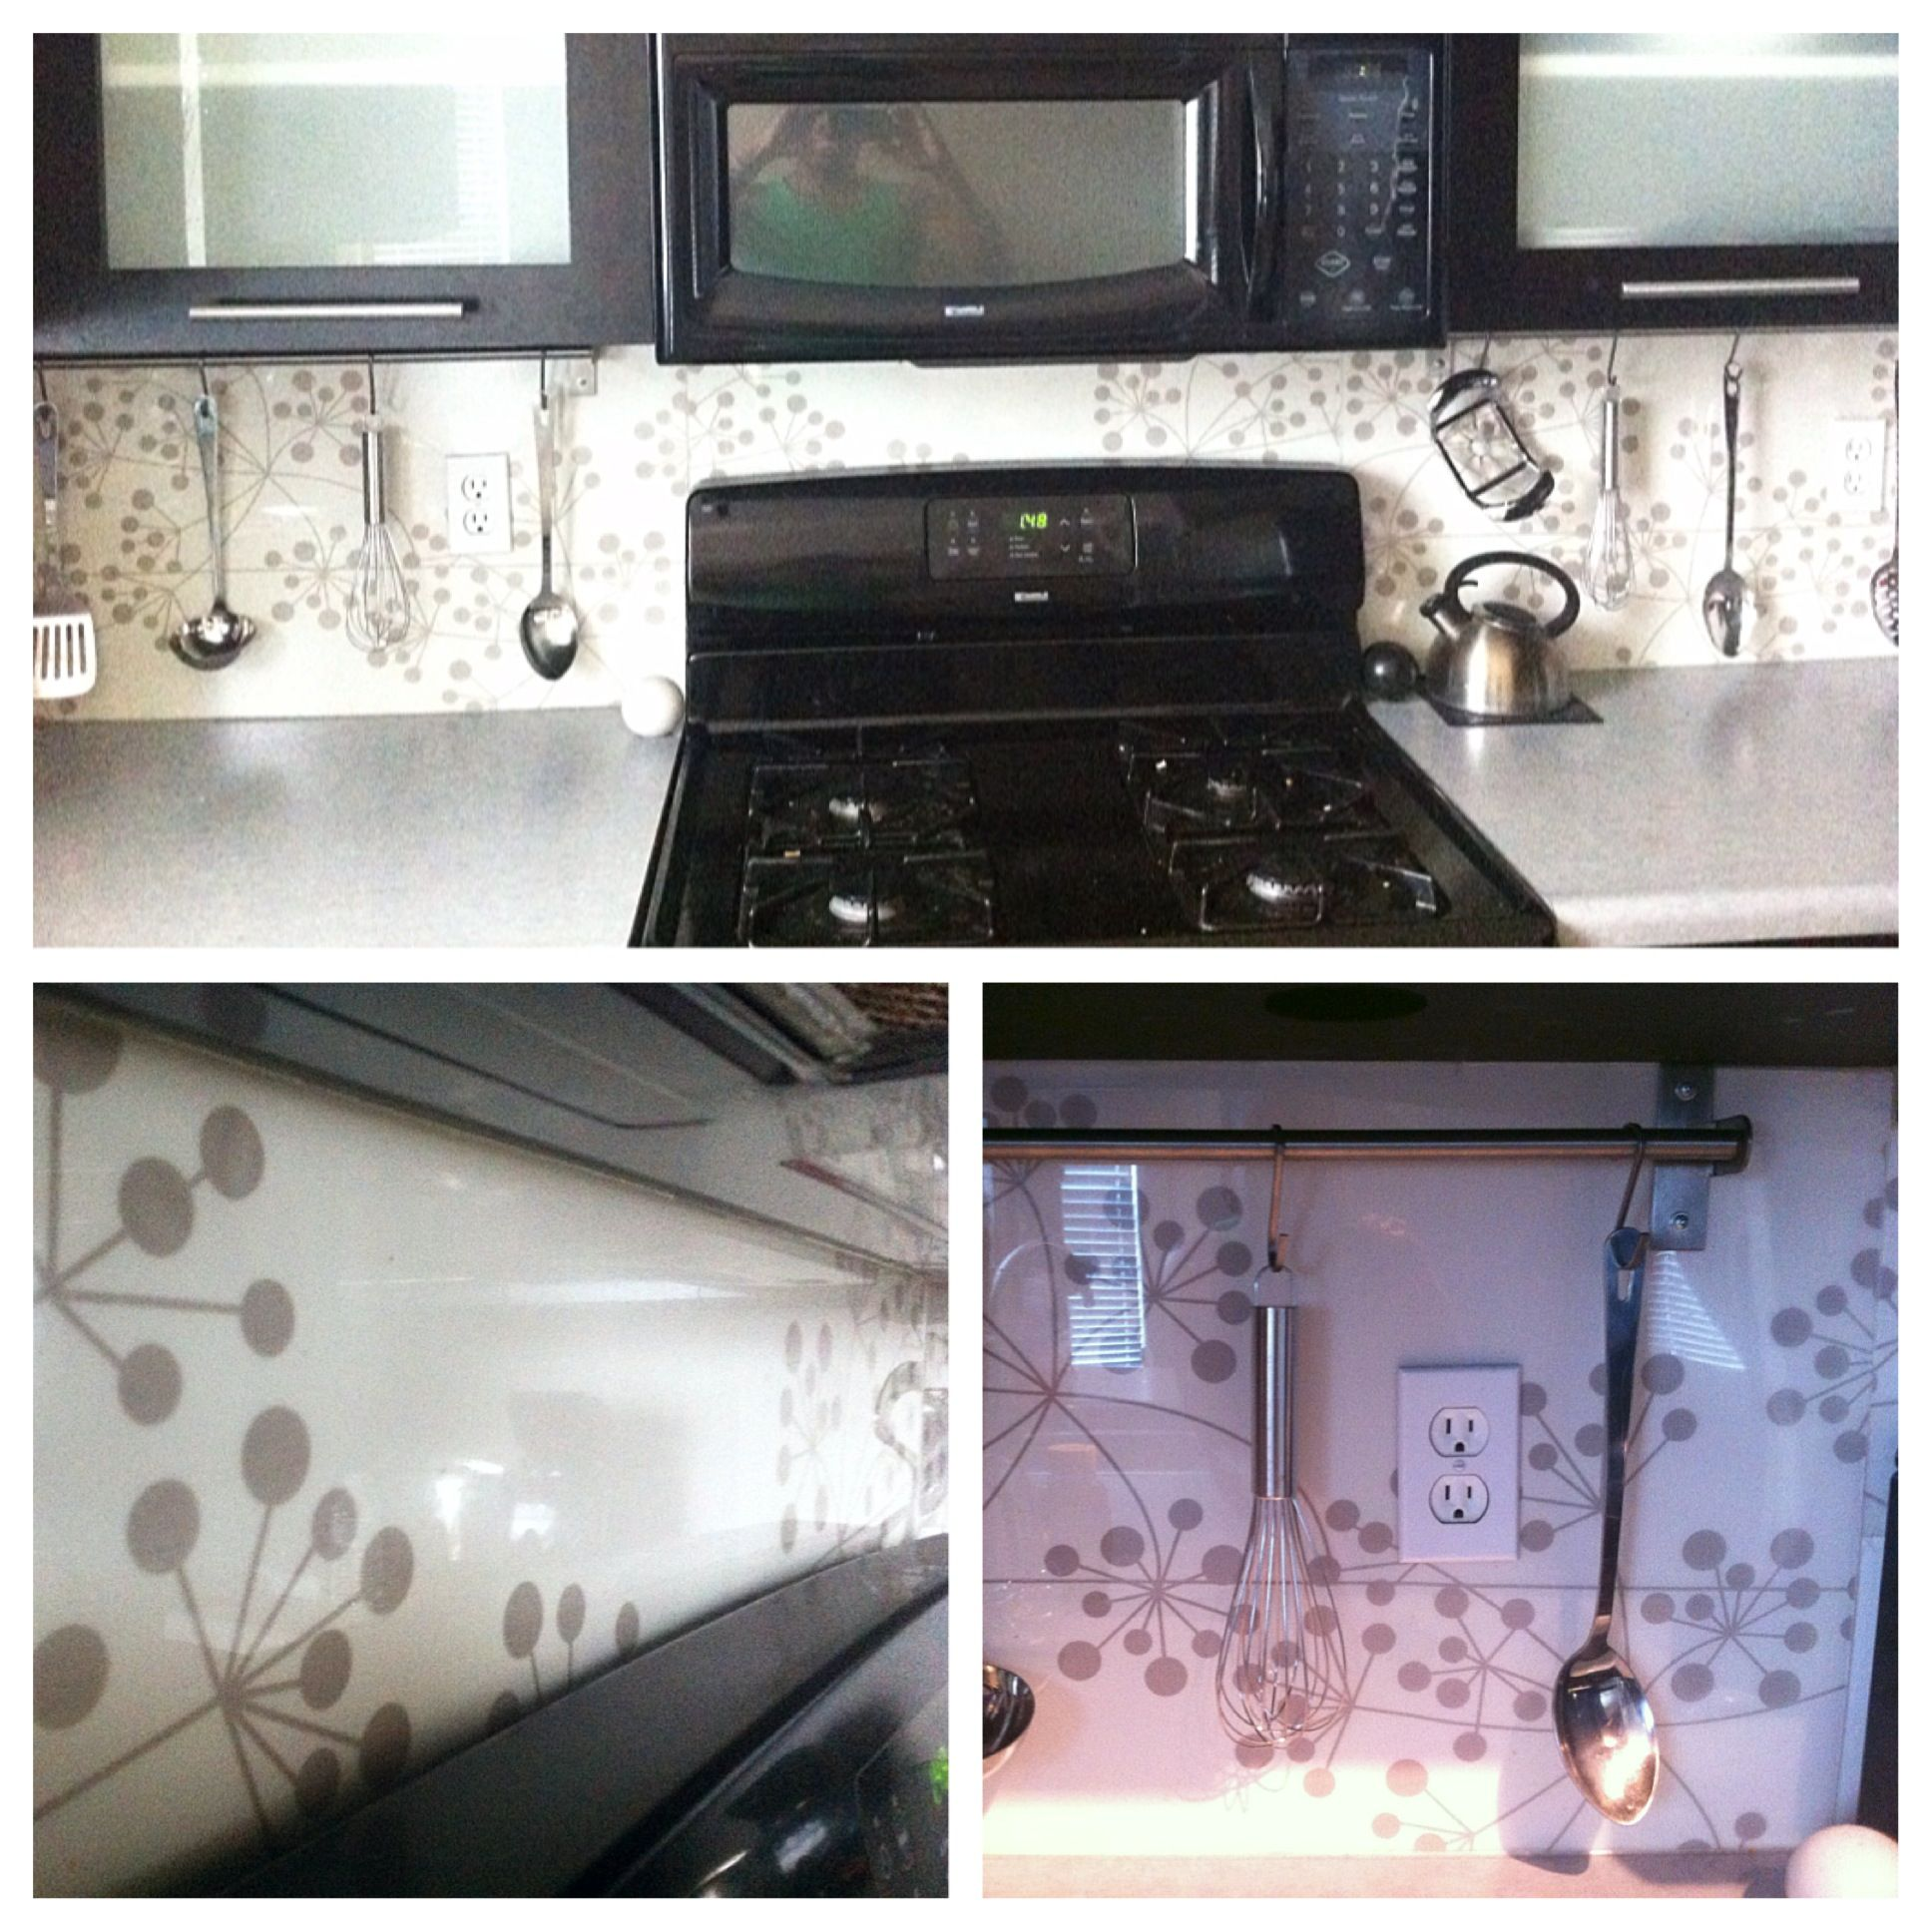 Clear Plexiglass Backsplash Backed With Nylon Textile Designed By My Wife Laci